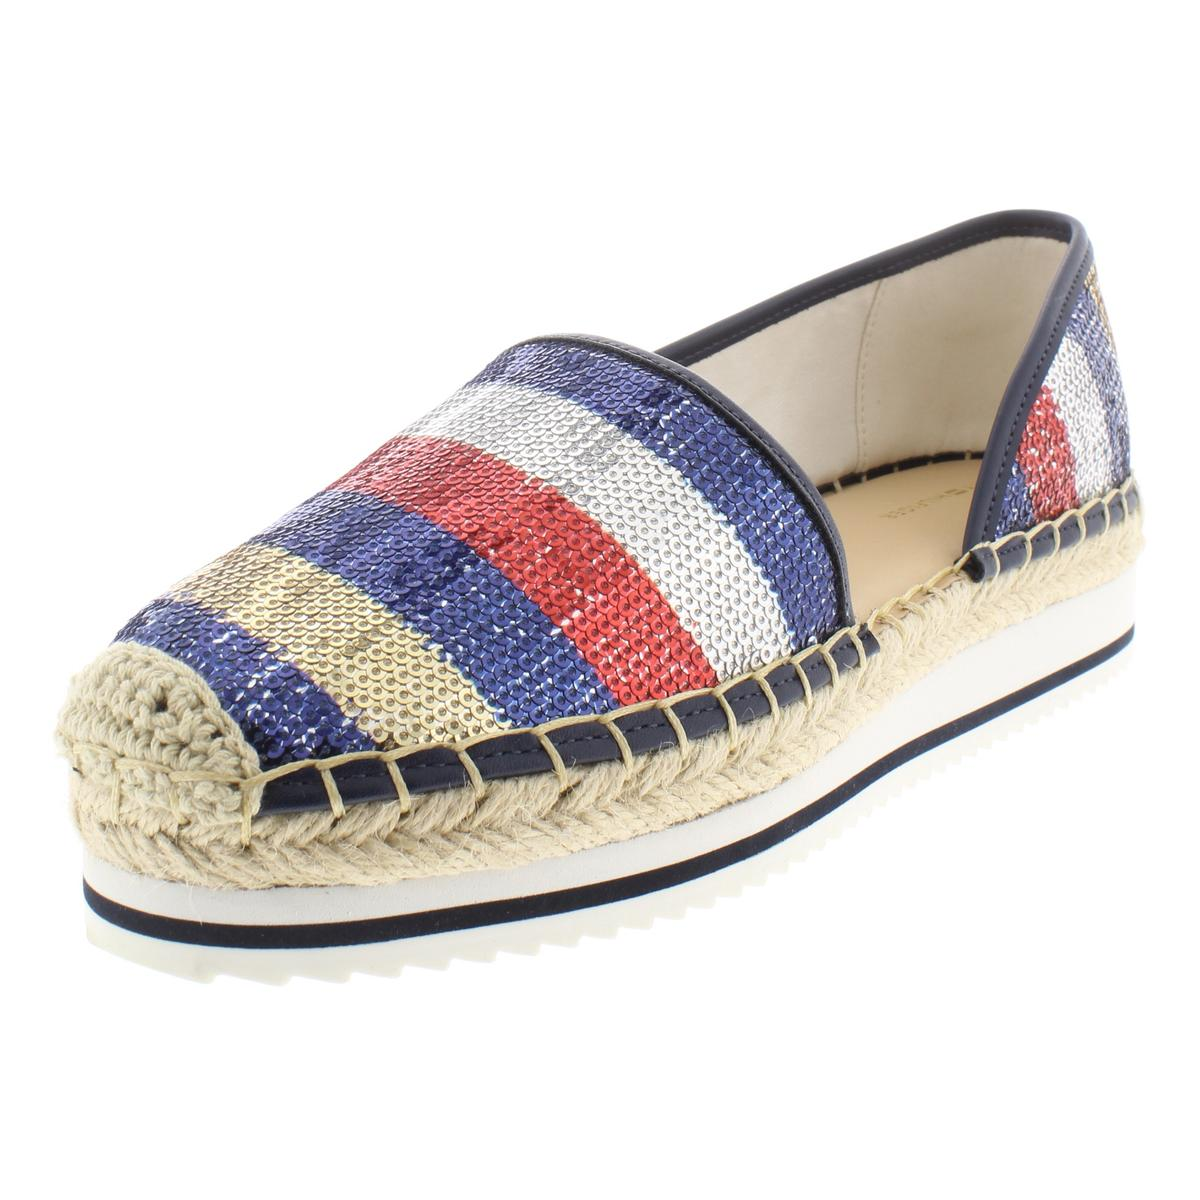 b2ef36cbf Details about Tommy Hilfiger Womens Carliss 2 D Orsay Casual Espadrilles  Shoes BHFO 7747